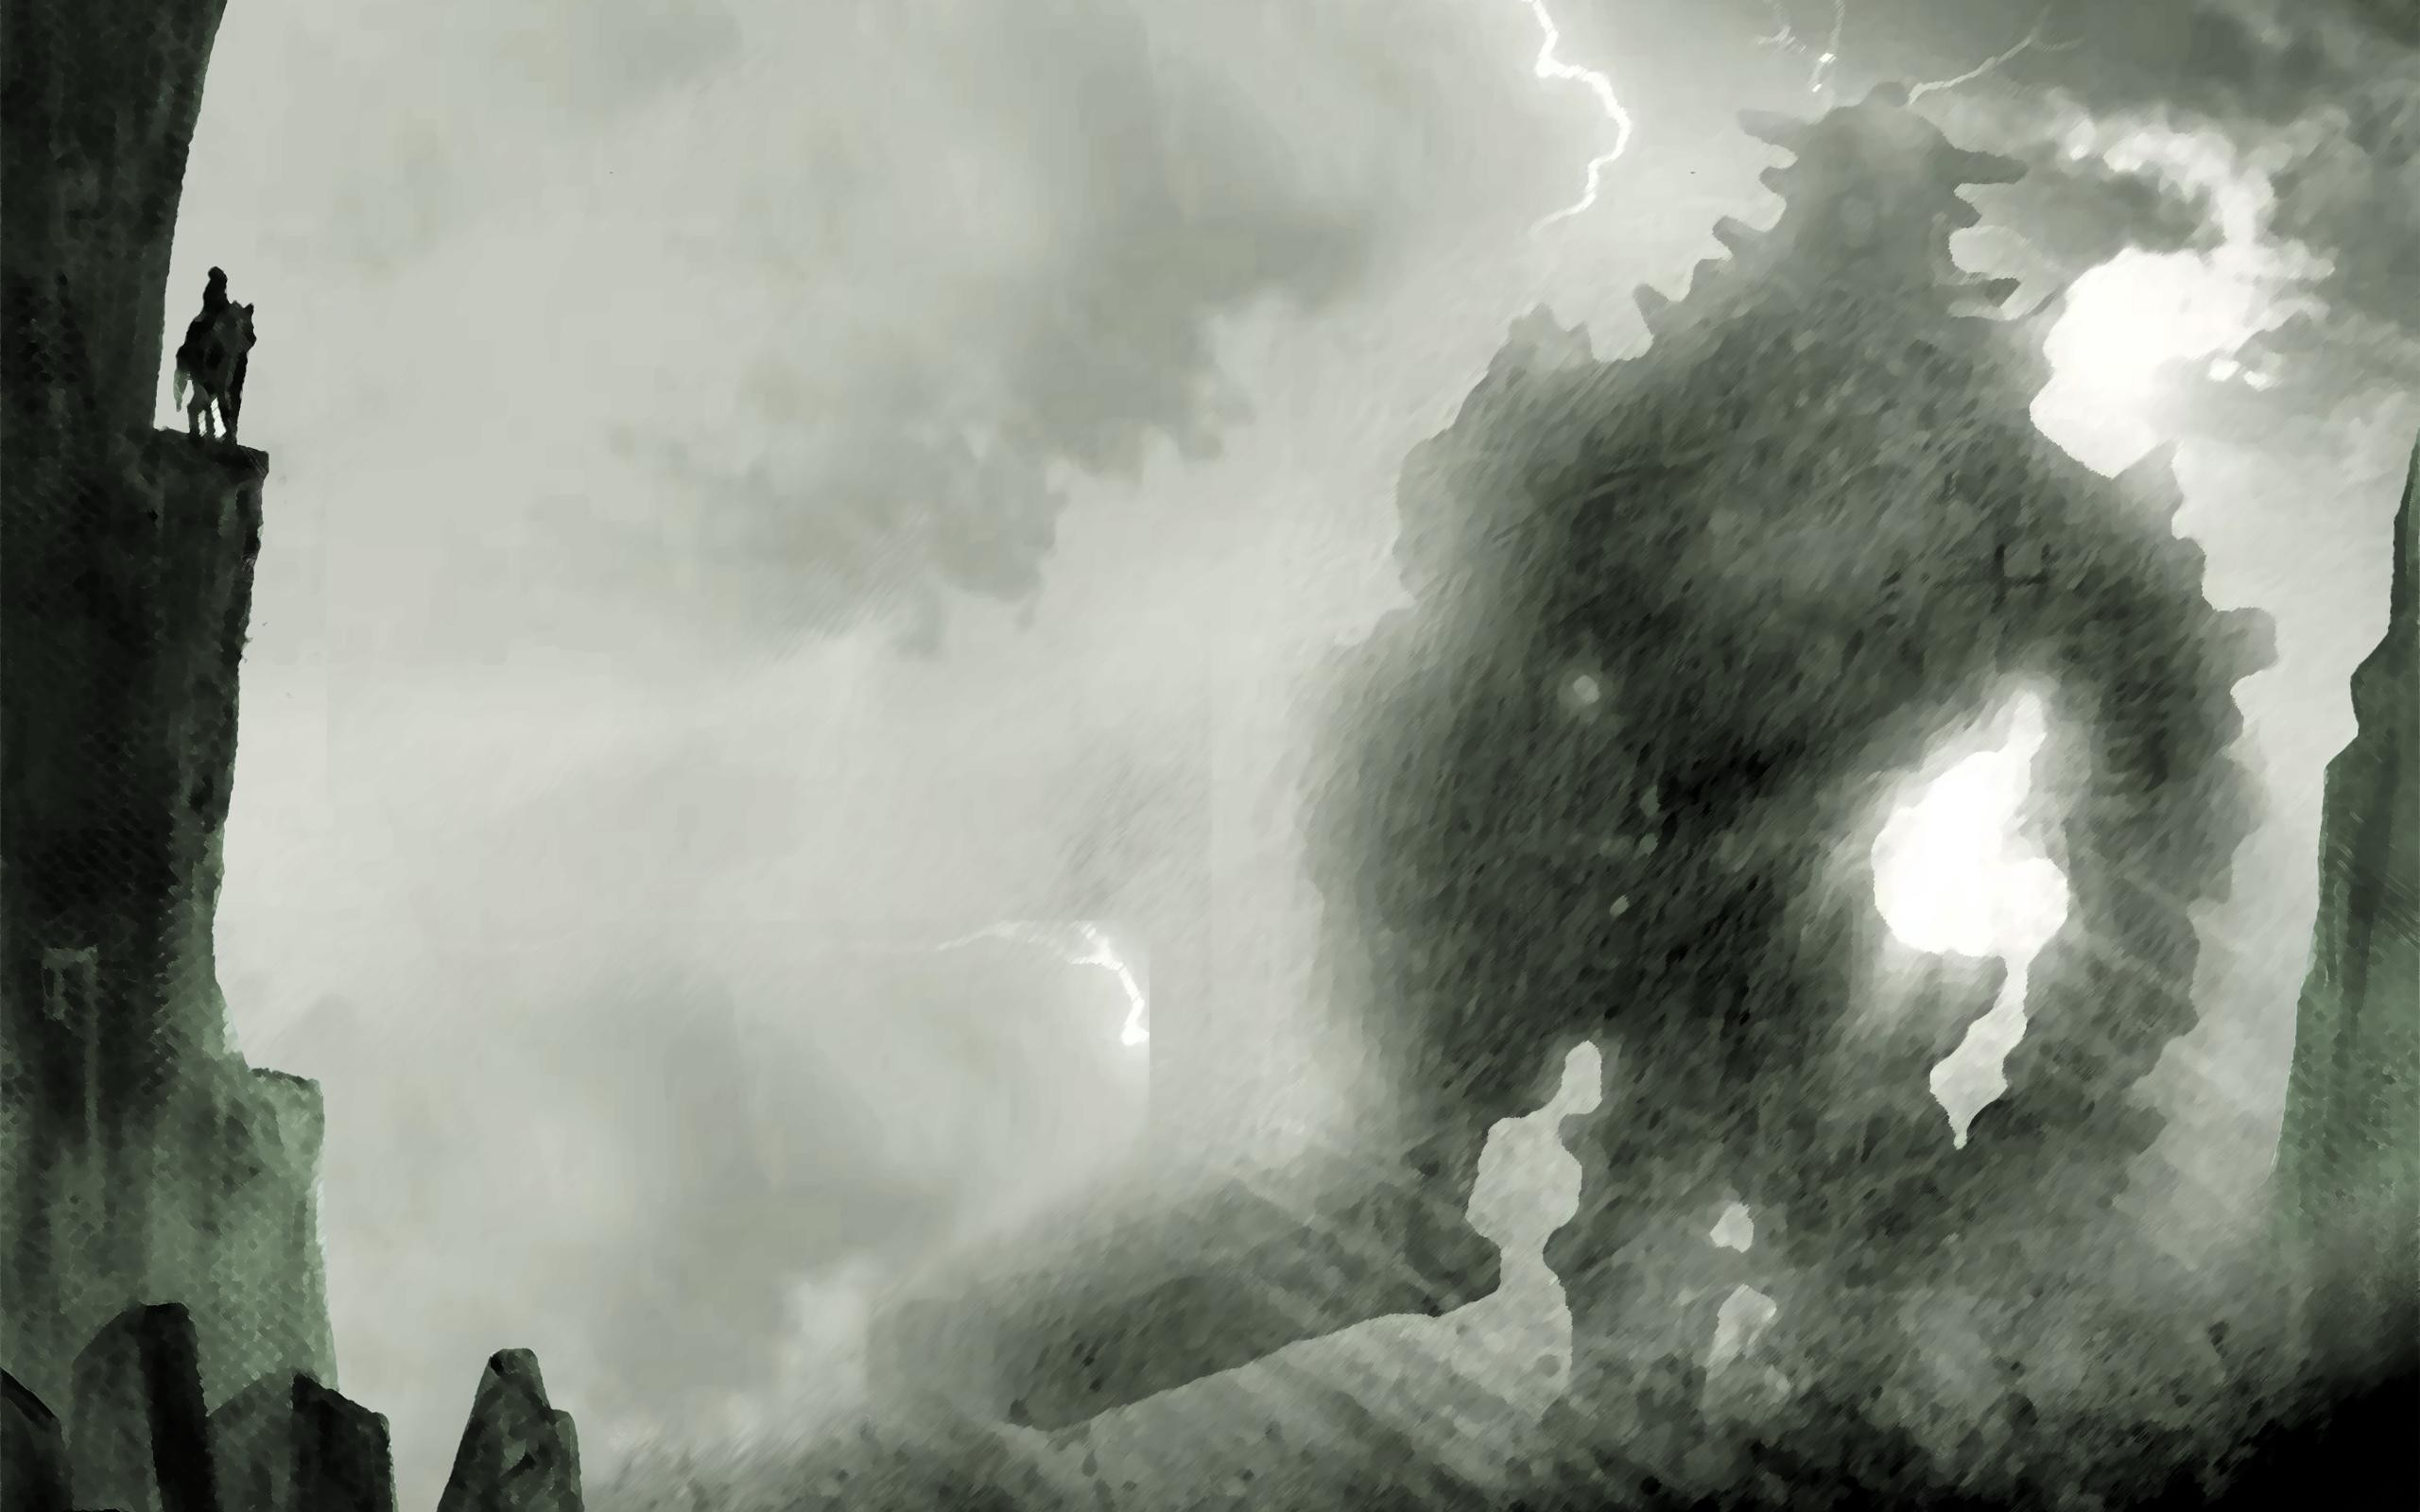 Shadow of the colossus wallpapers wallpapertag - Shadow of the colossus iphone wallpaper ...